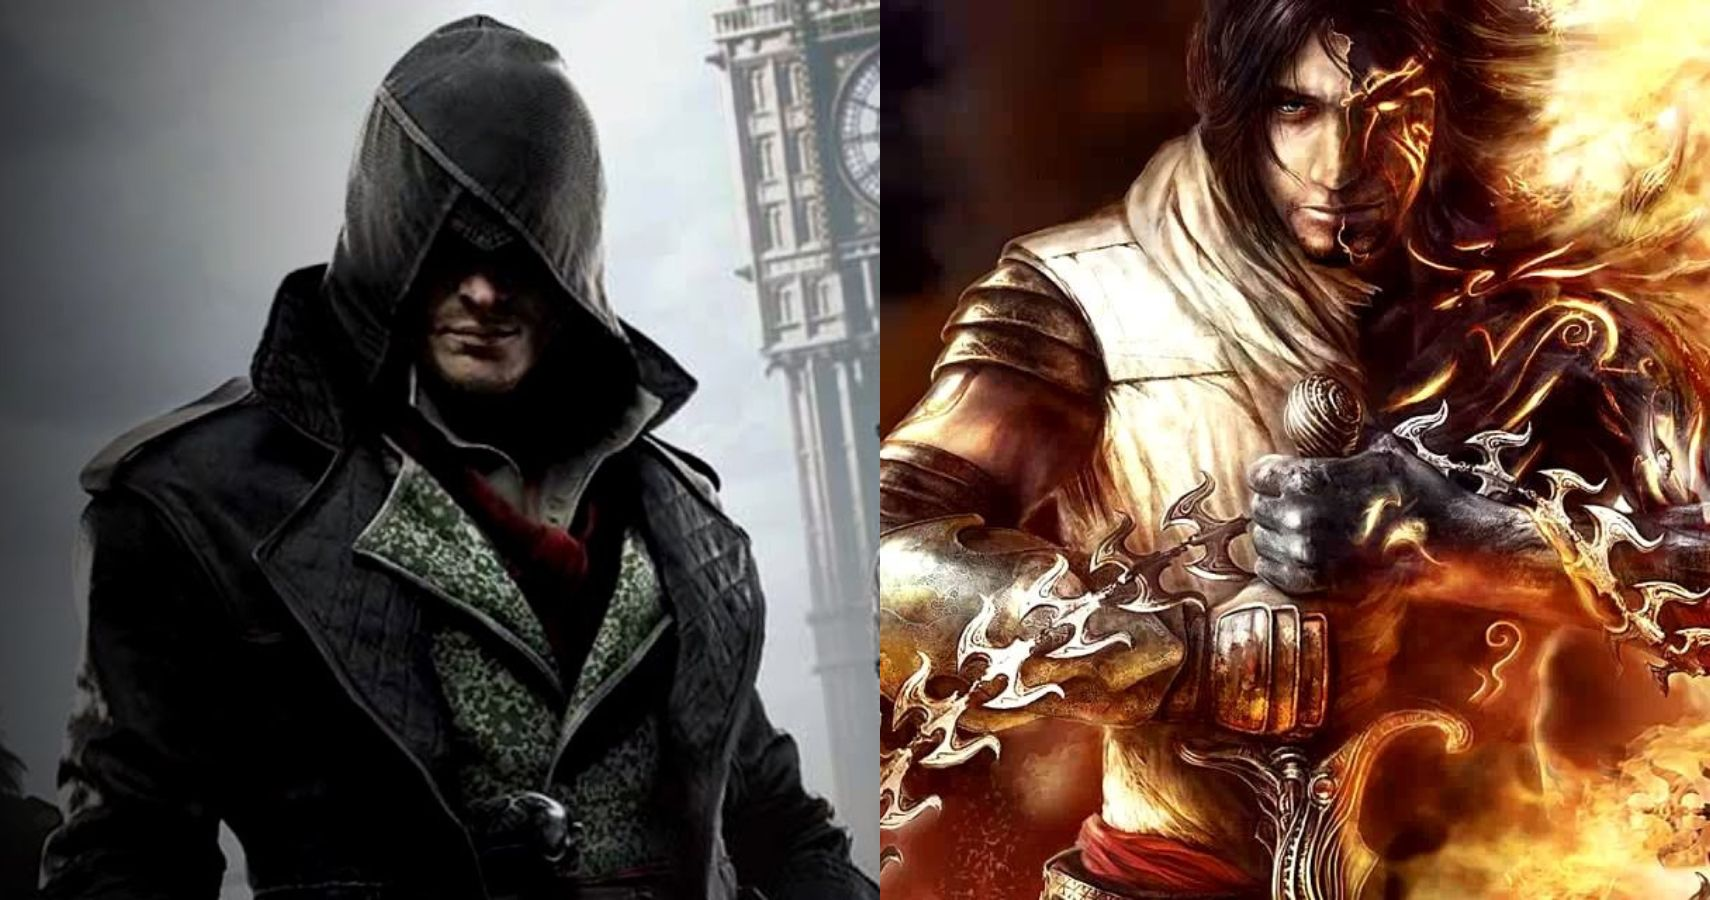 Assassin Value List 2020.6 Things Prince Of Persia Did Better Than Assassin S Creed